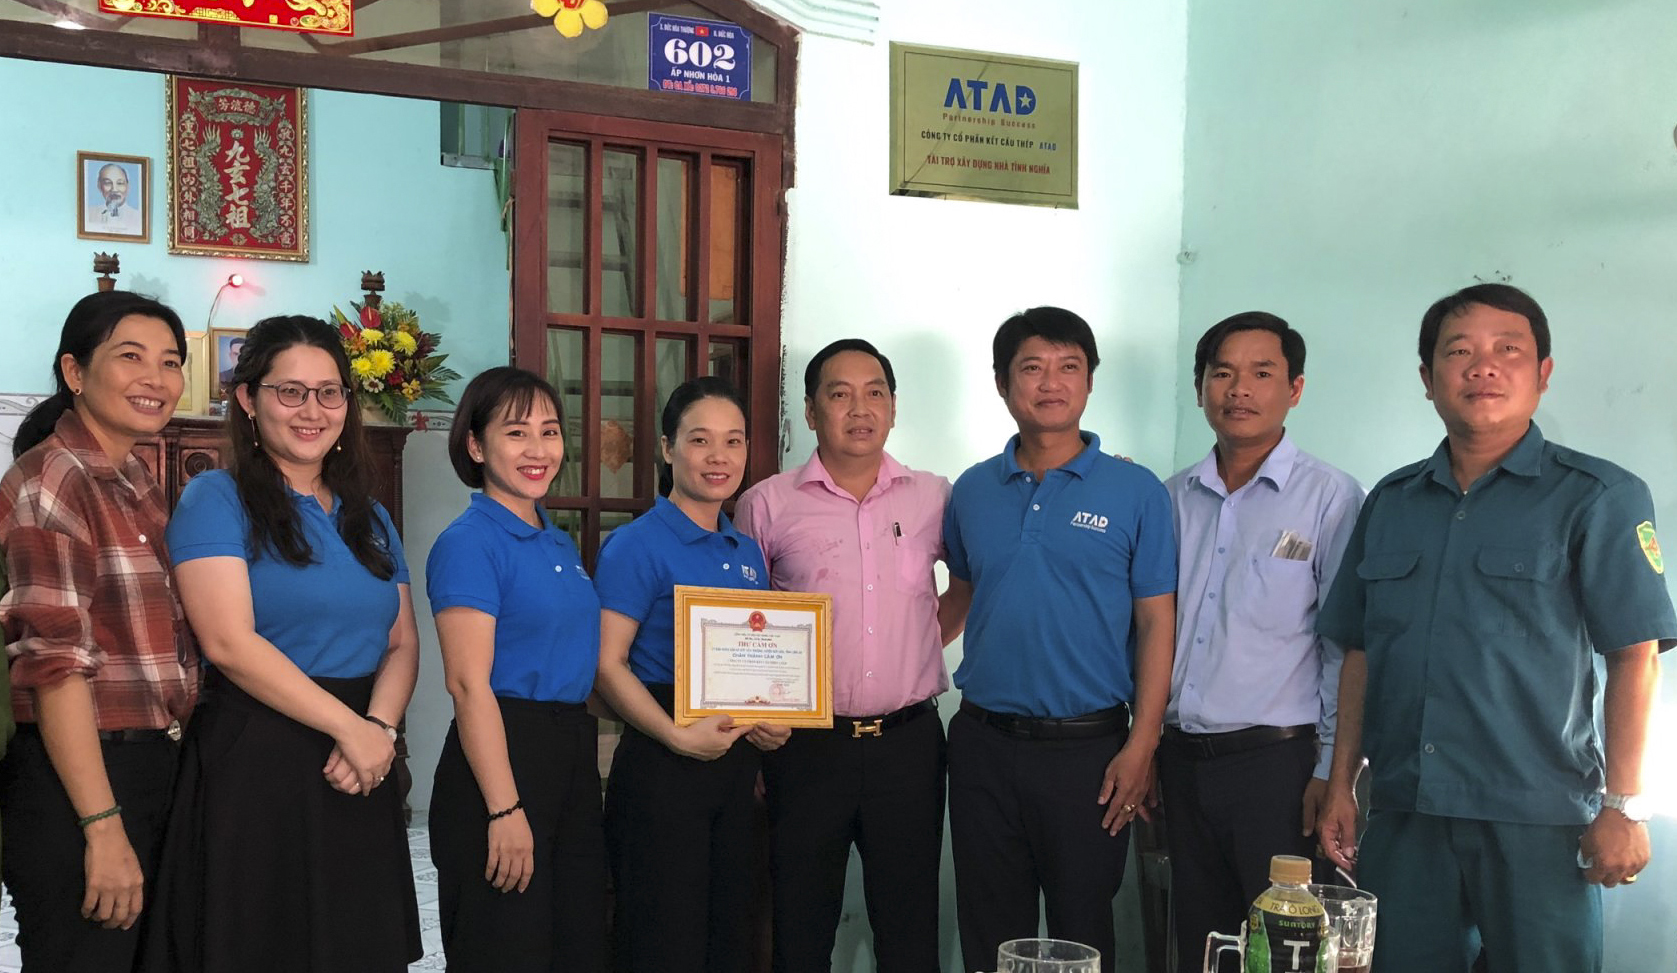 ATAD presented houses to families in difficult circumstances in Duc Hoa town, Long An province